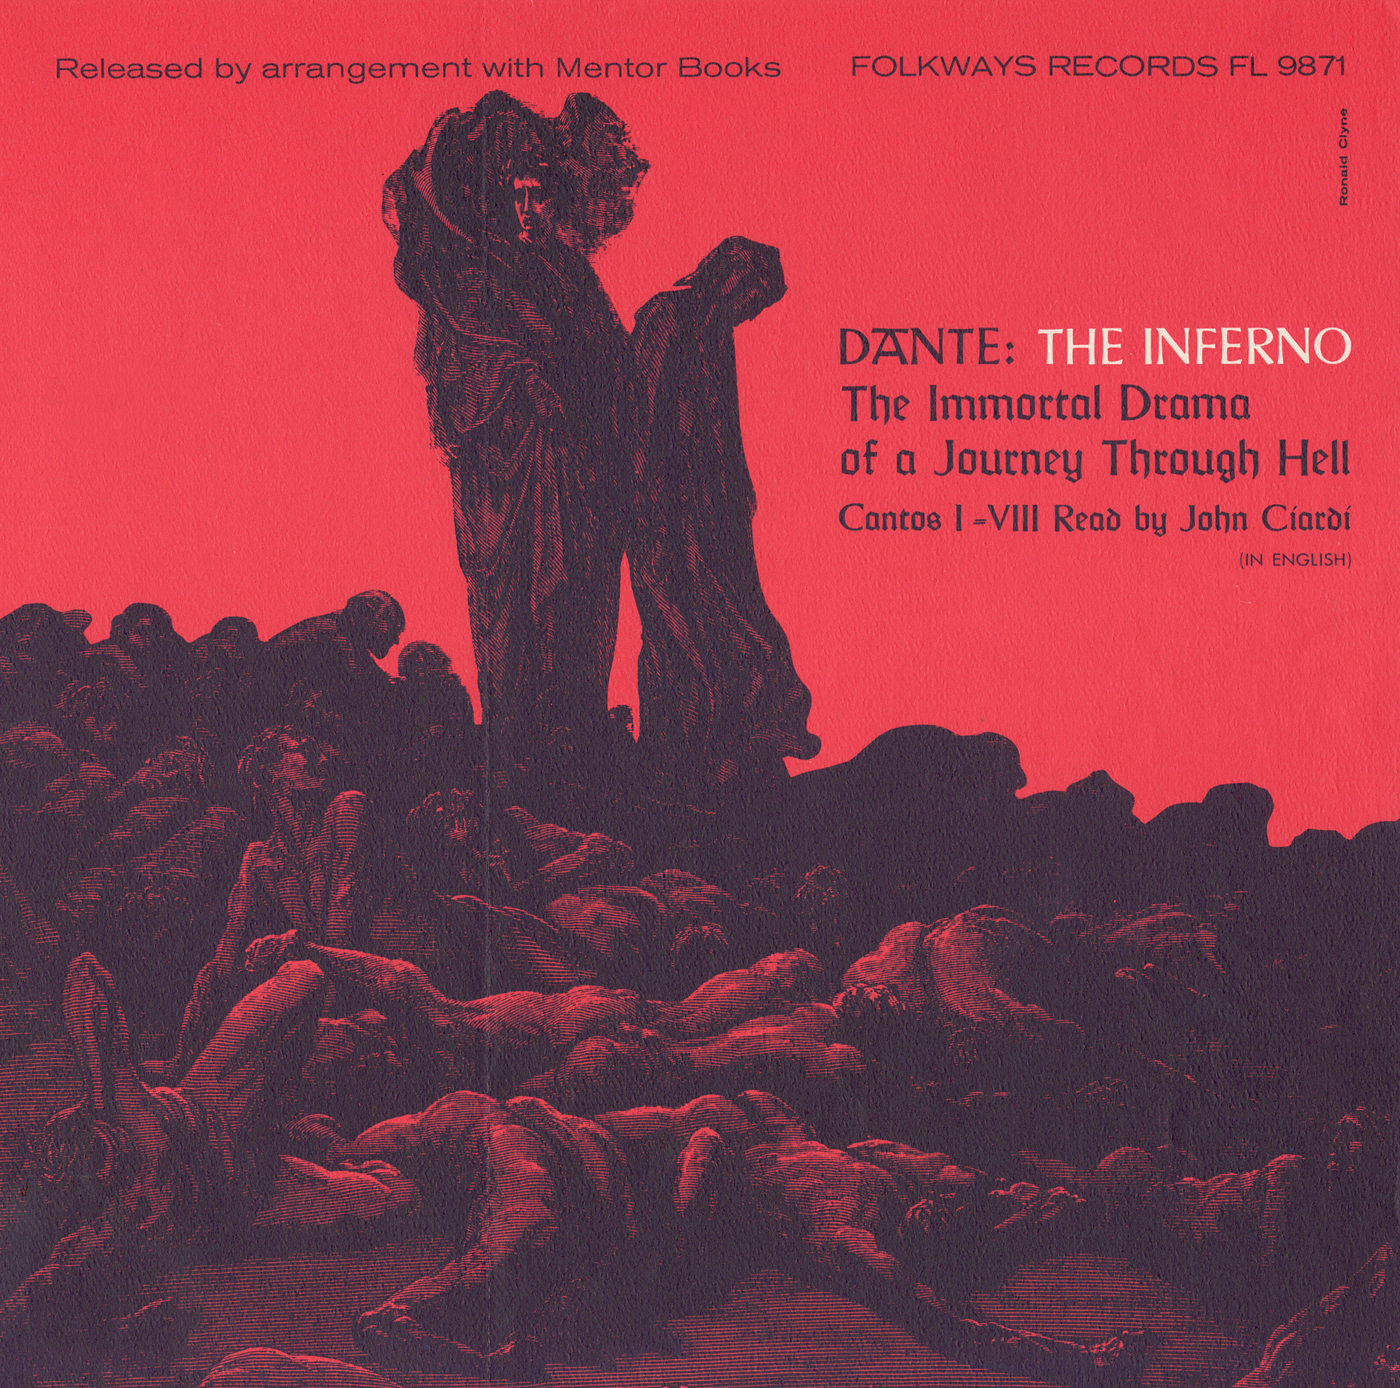 The Inferno Dante Alighieri The Immortal Drama Of A